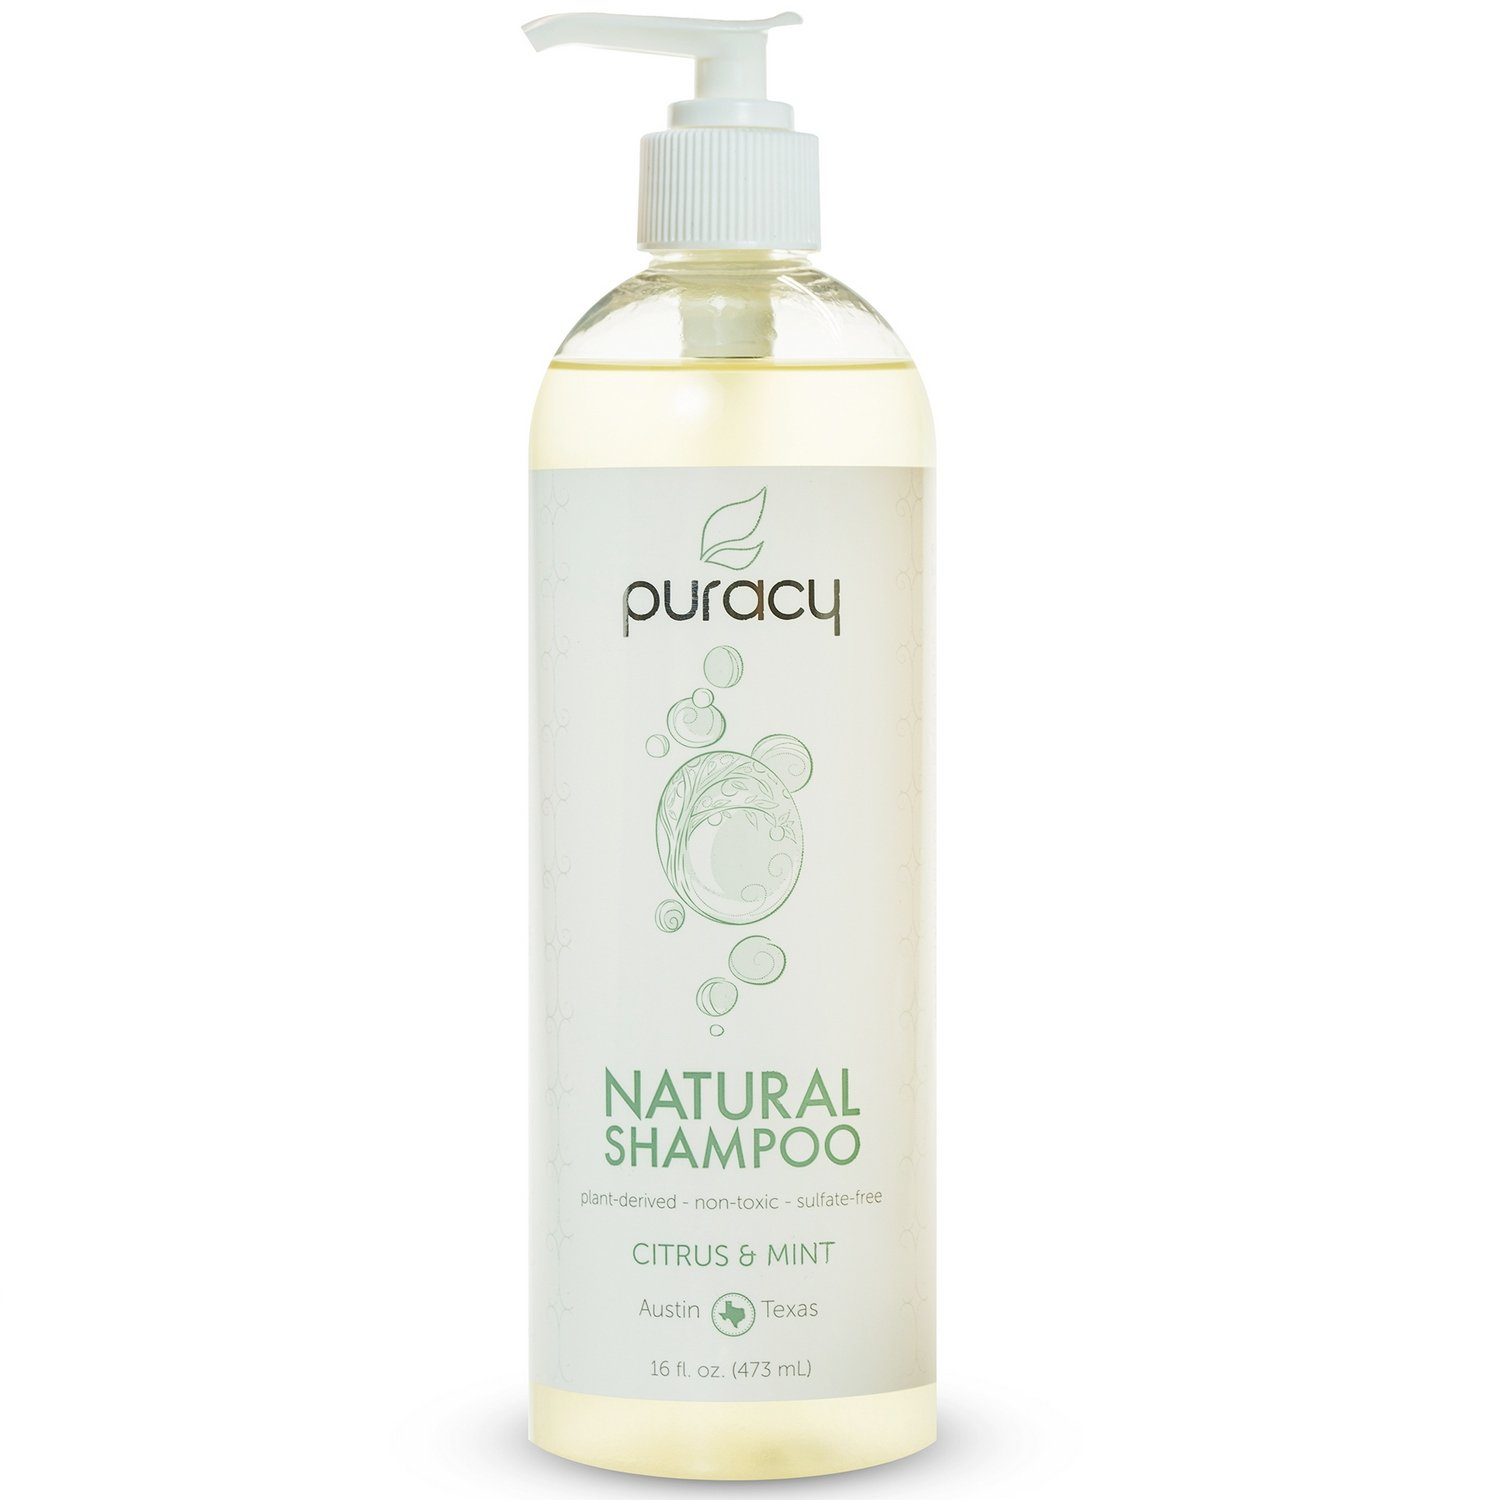 Puracy Natural Daily Hair Shampoo, Sulfate-Free, Citrus and Mint, 473 mL Pump Bottle PNS16-1